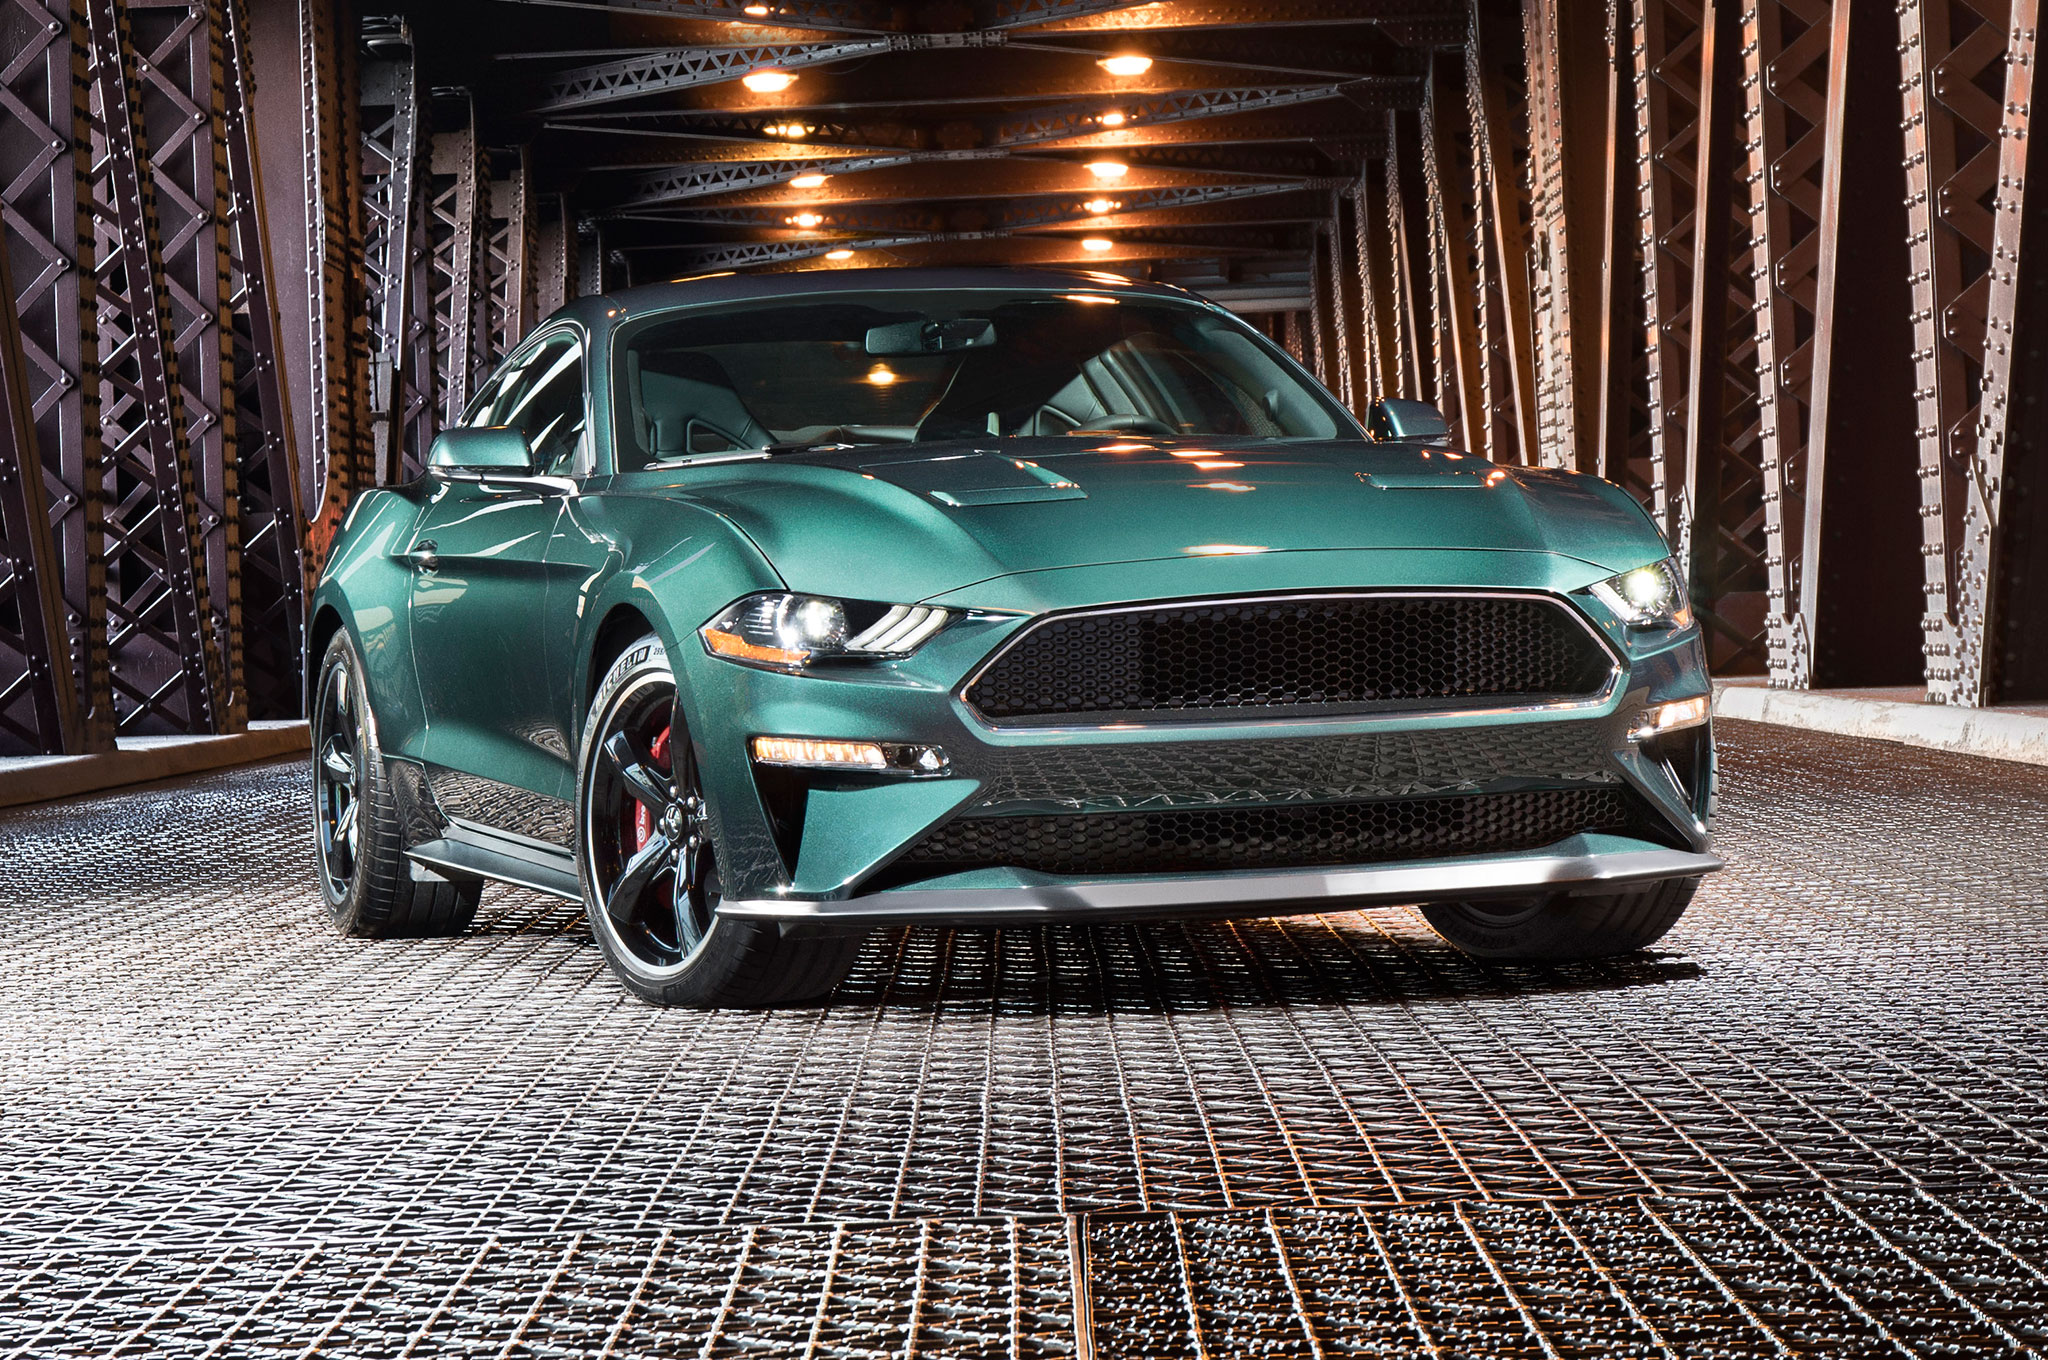 2019 Ford Mustang Shelby GT500 Confirmed with 700 Horsepower | Automobile Magazine